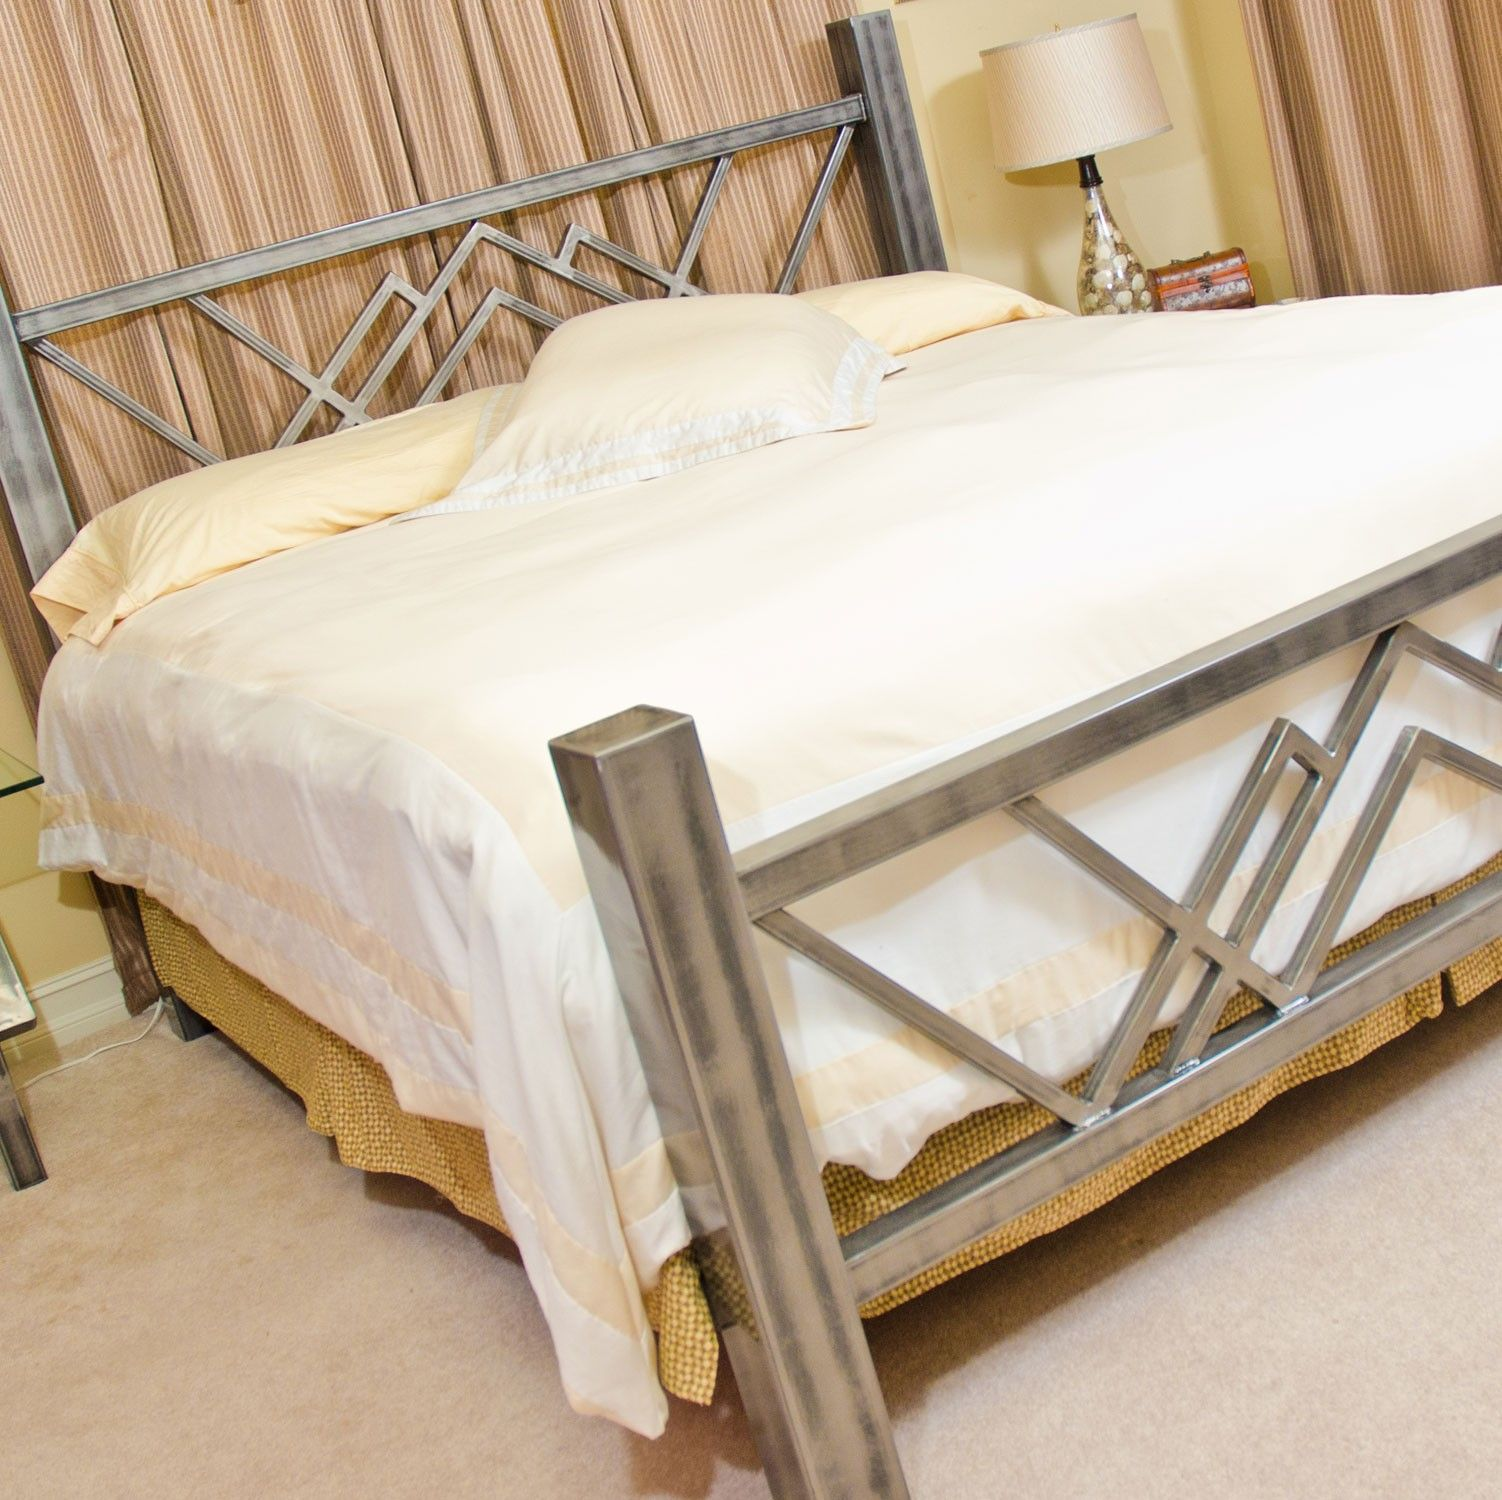 A stainless steel bed perfect for the humidity and